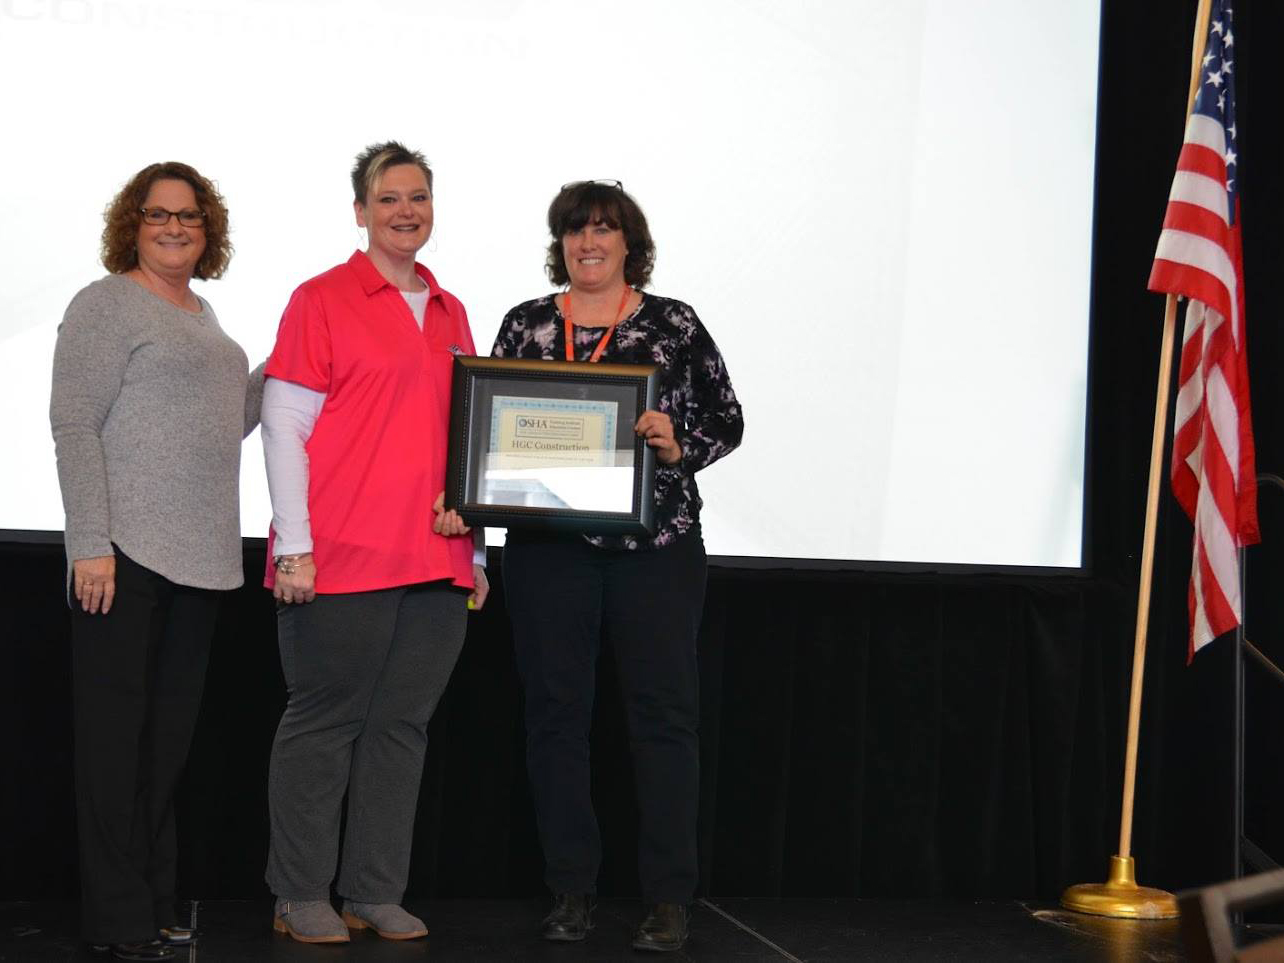 Kim Hoffa accepts Safe Employer award for HGC